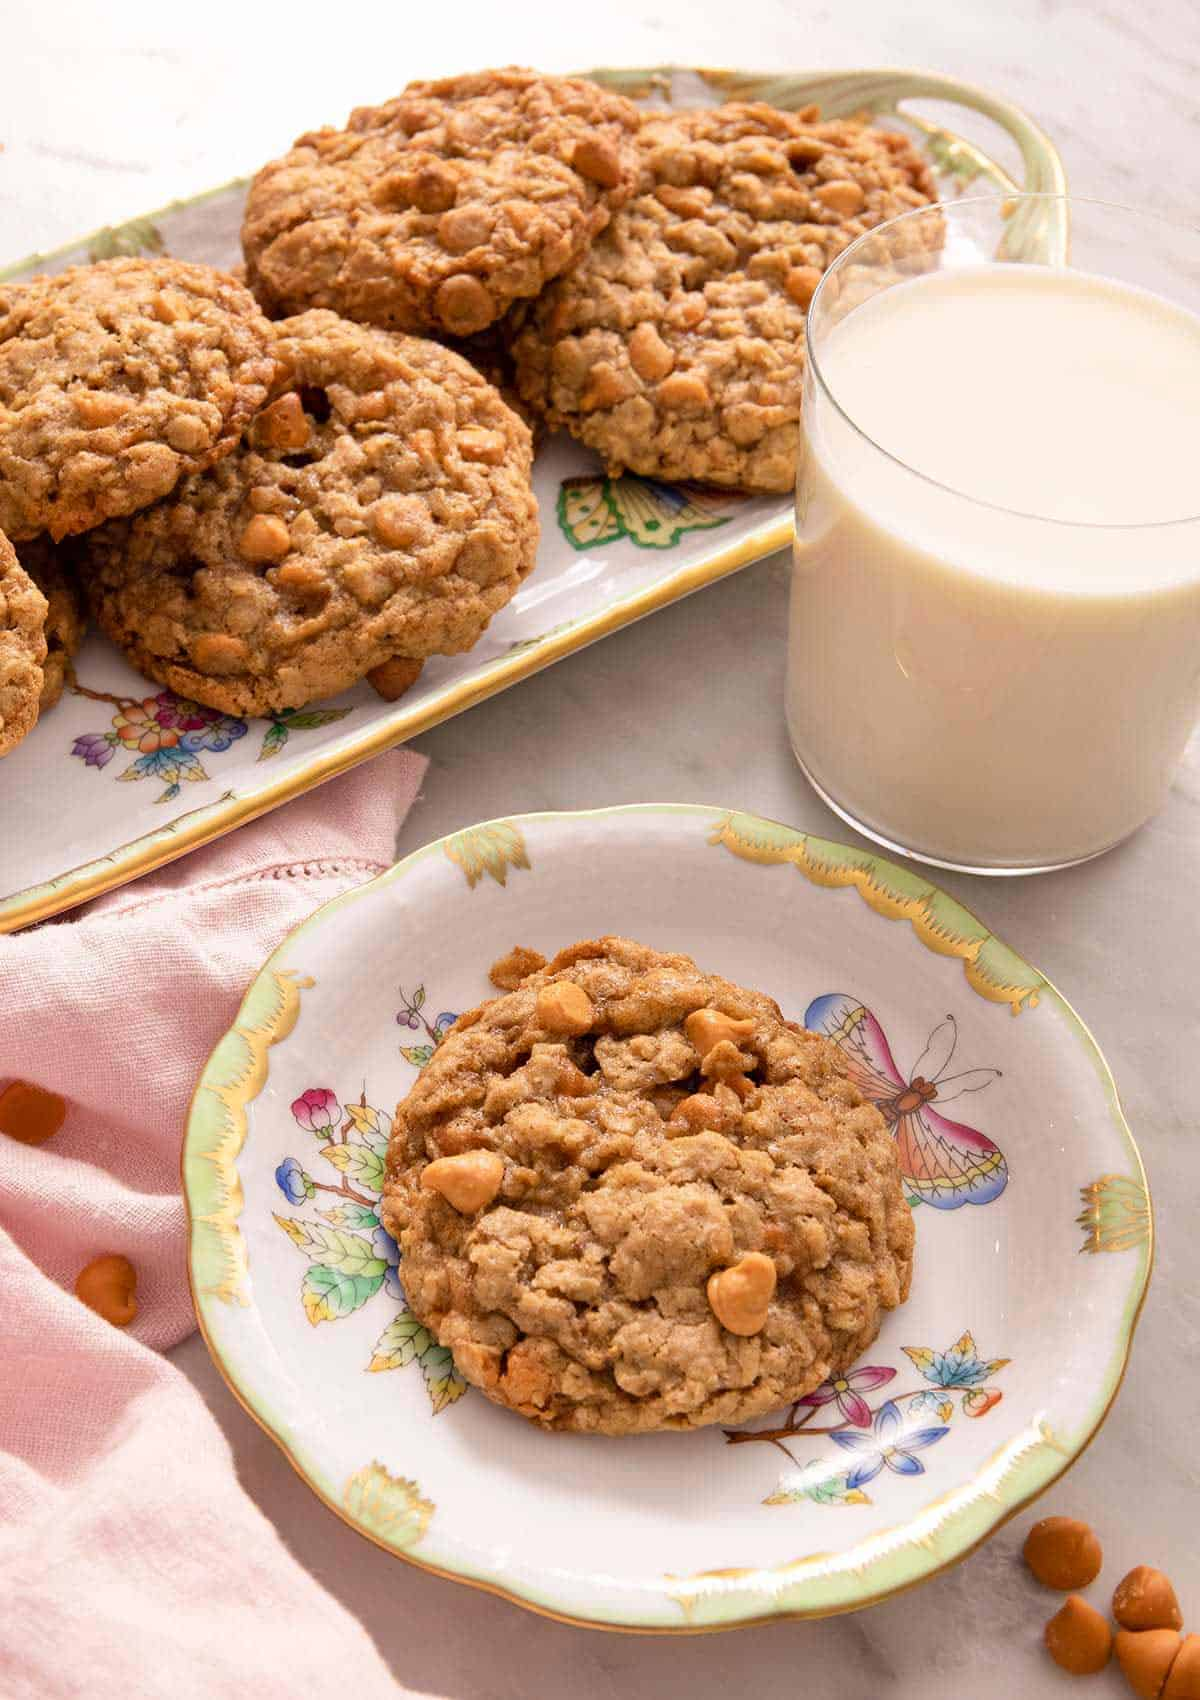 Oatmeal scotchies on plates with a glass of milk